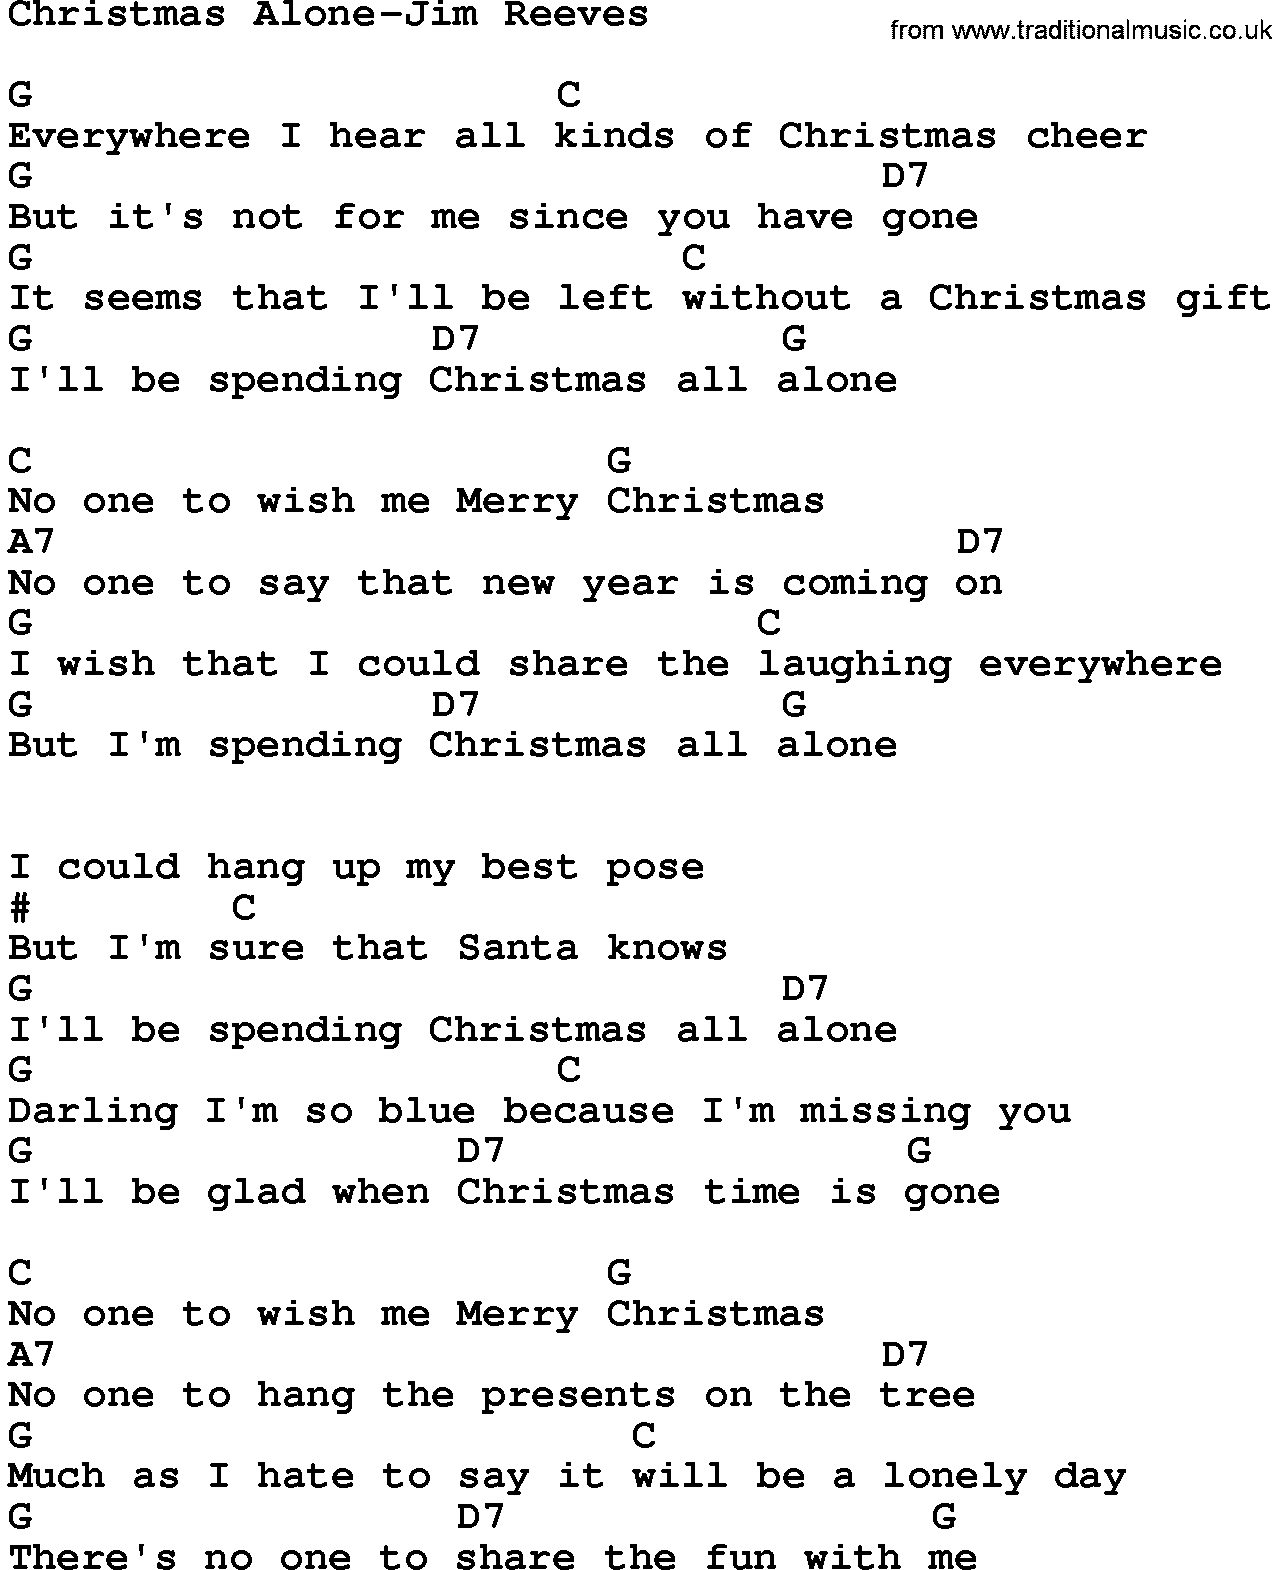 Country Music:Christmas Alone-Jim Reeves Lyrics and Chords